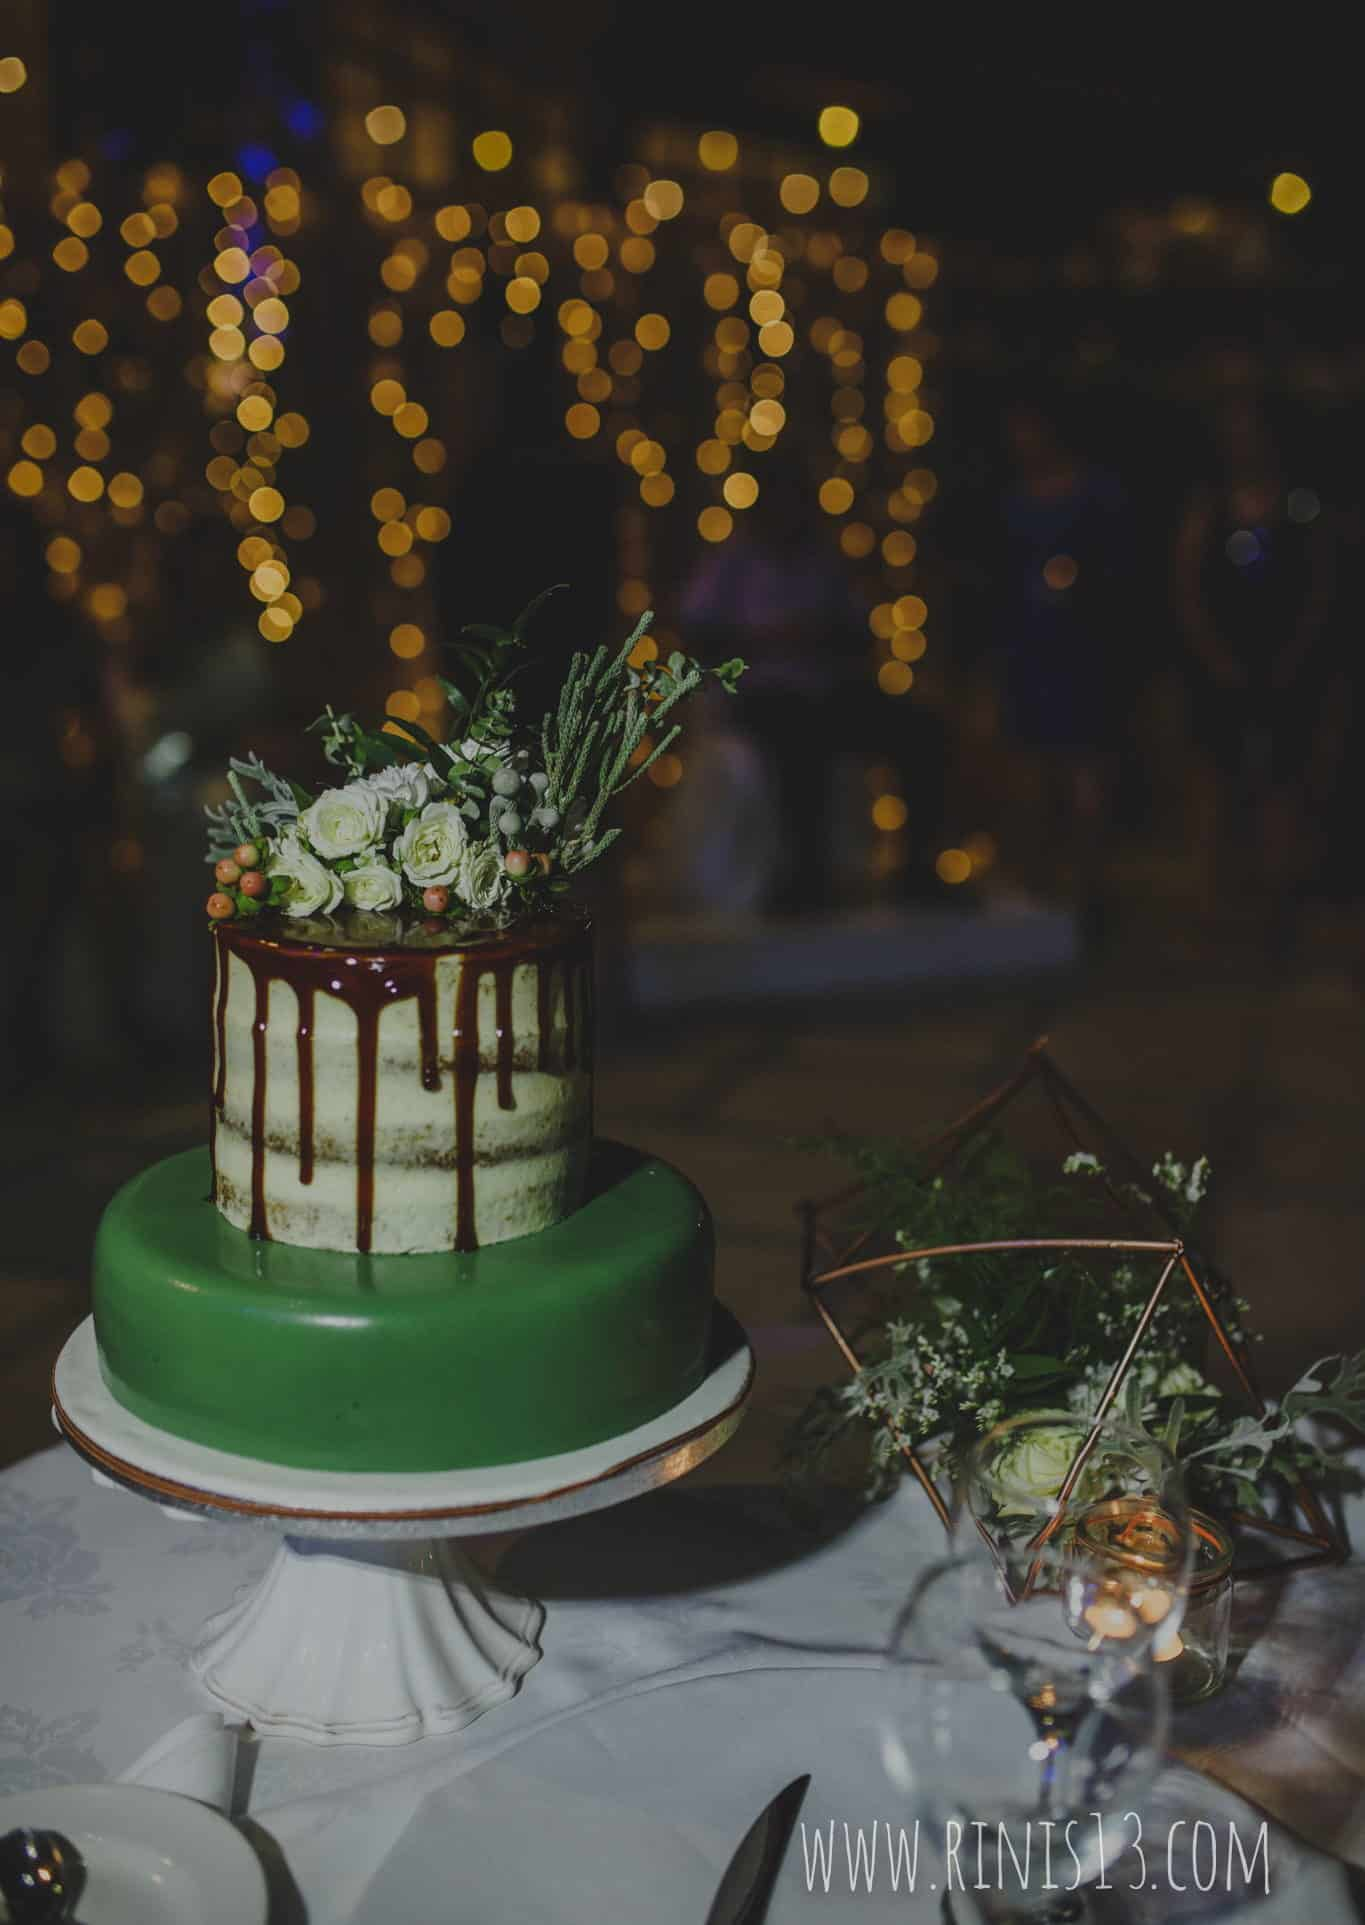 wedding cake in green shades and flowers